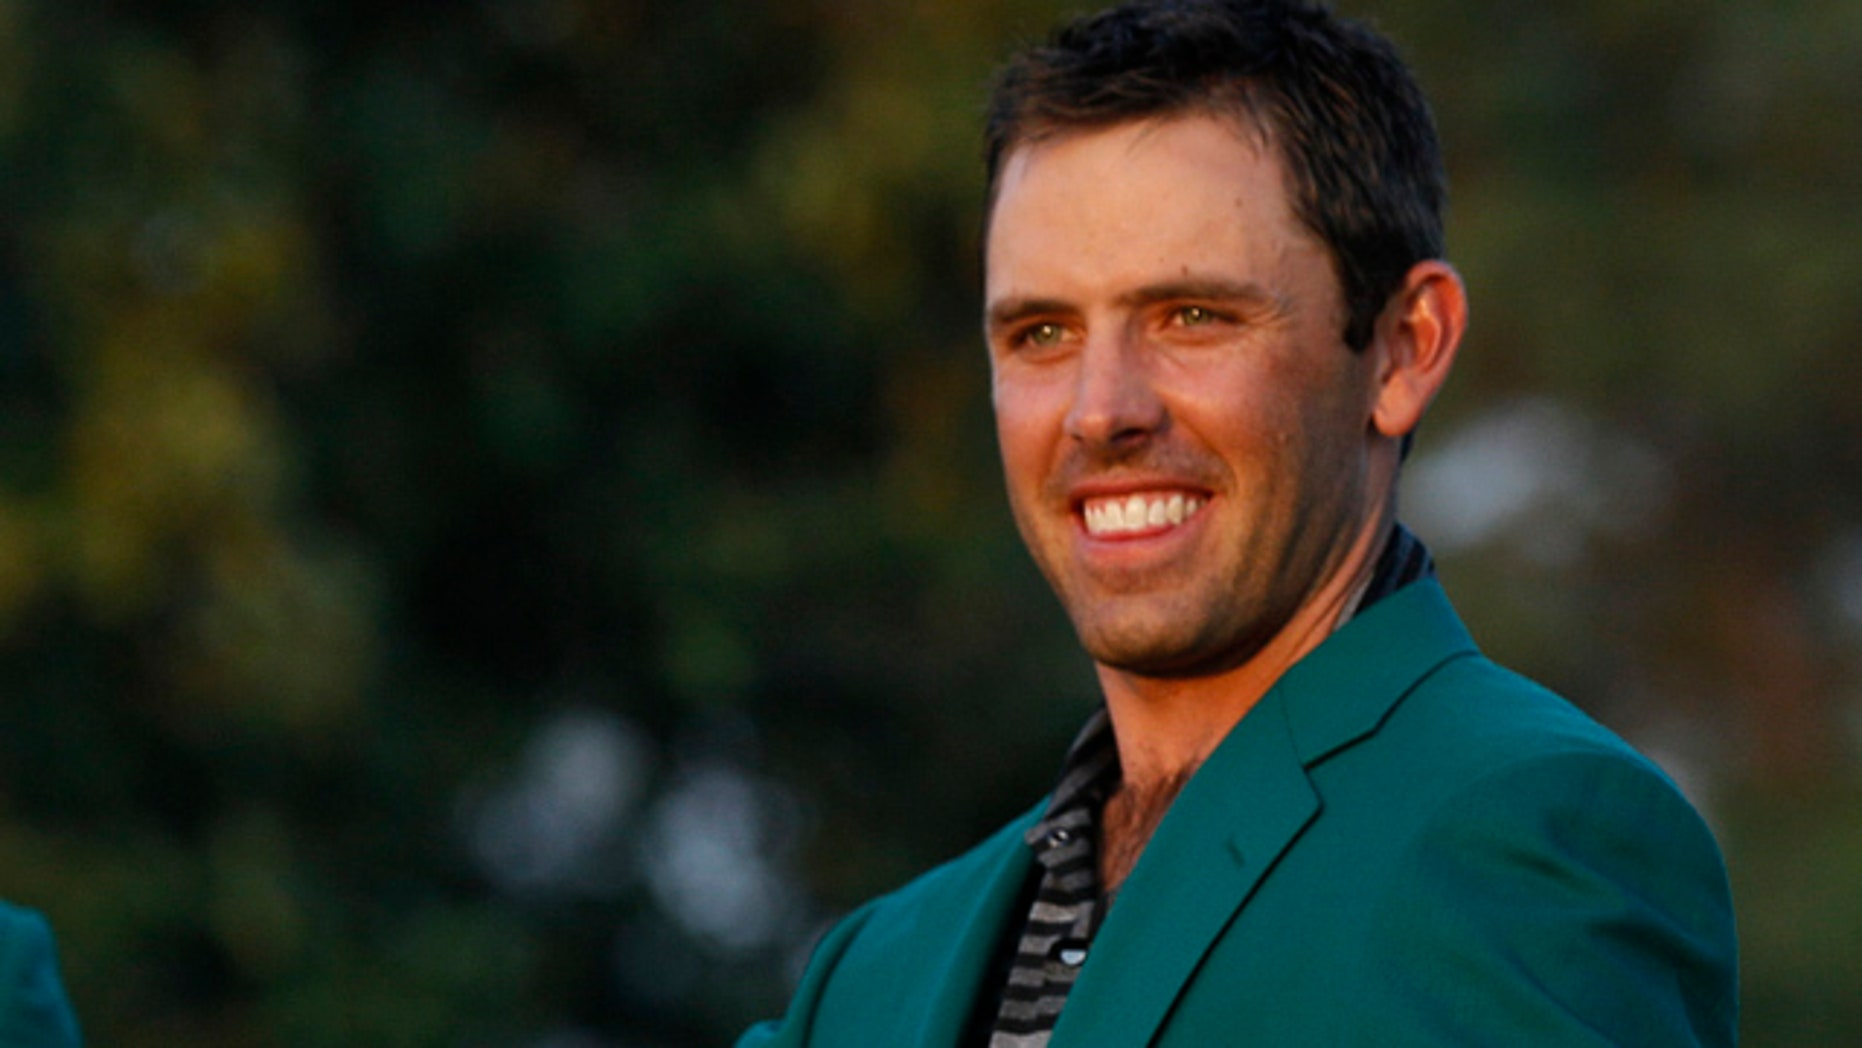 April 10, 2011: Charl Schwartzel of South Africa shows off his green jacket after winning the Masters golf tournament.